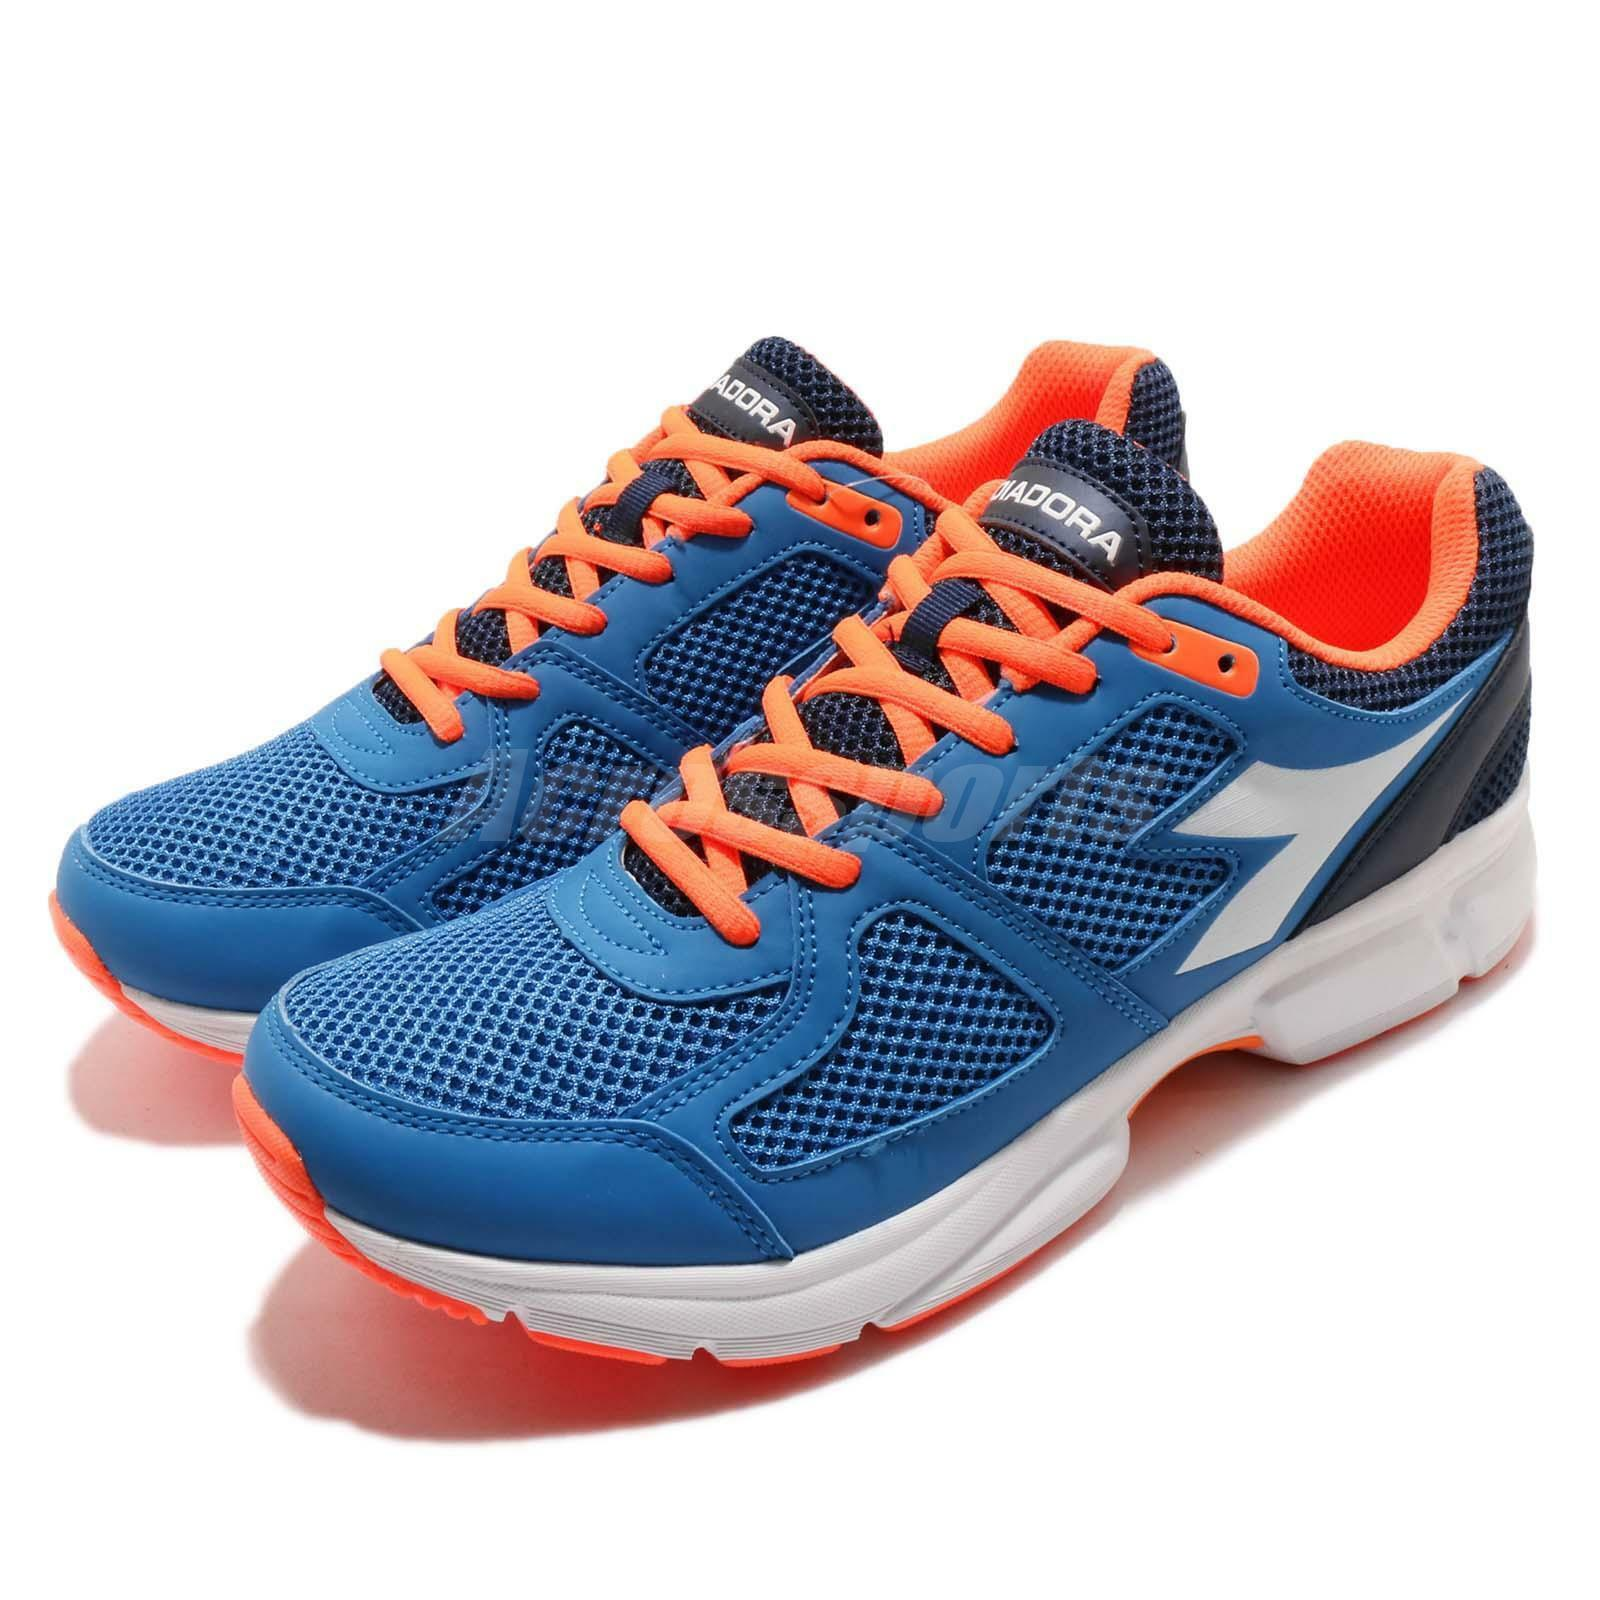 Diadora Shape 8 Blue Orange White Uomo Running Walking Scarpe DA172074-C4415